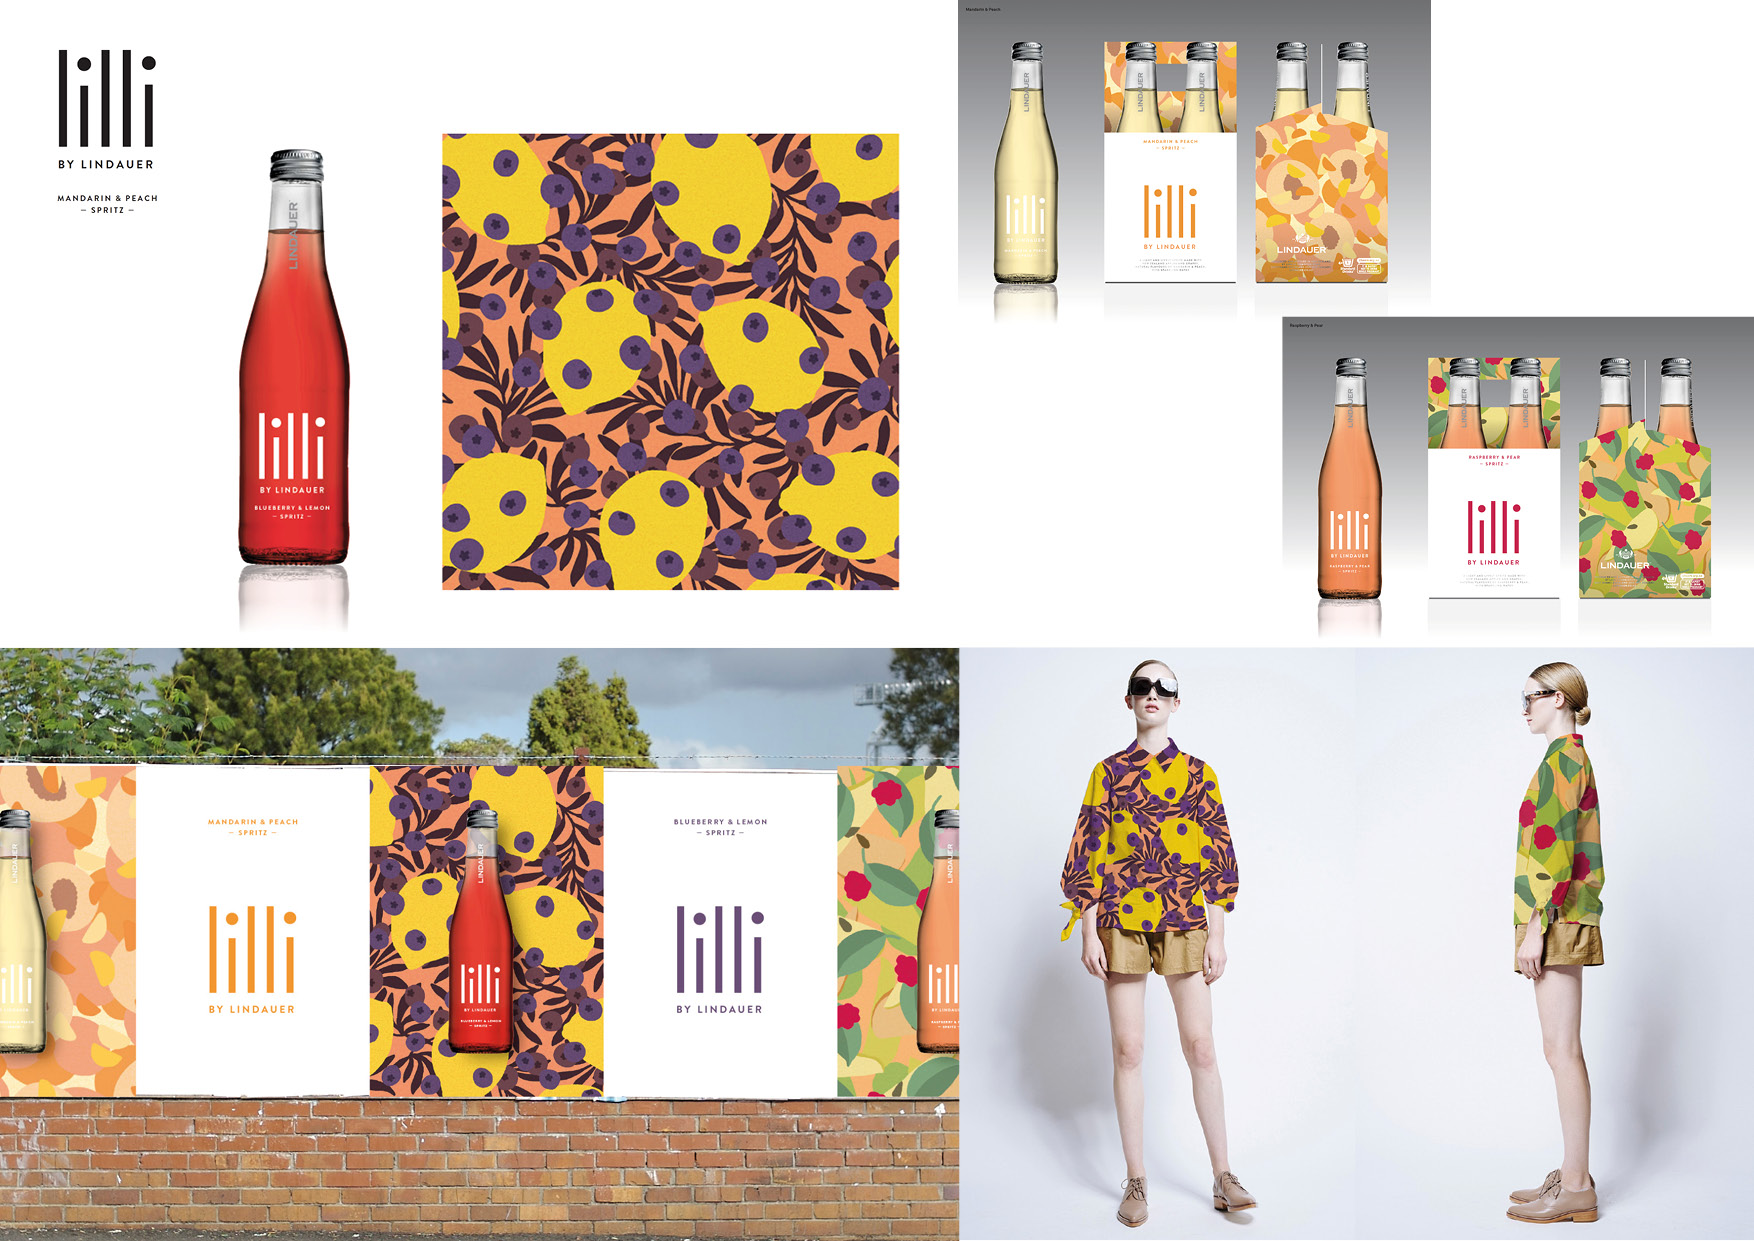 Lilli Spritz by Lindauer Anna Niestroj - Monster Patterns Pattern Design Studio Berlin Germany Deutschland Muster Design